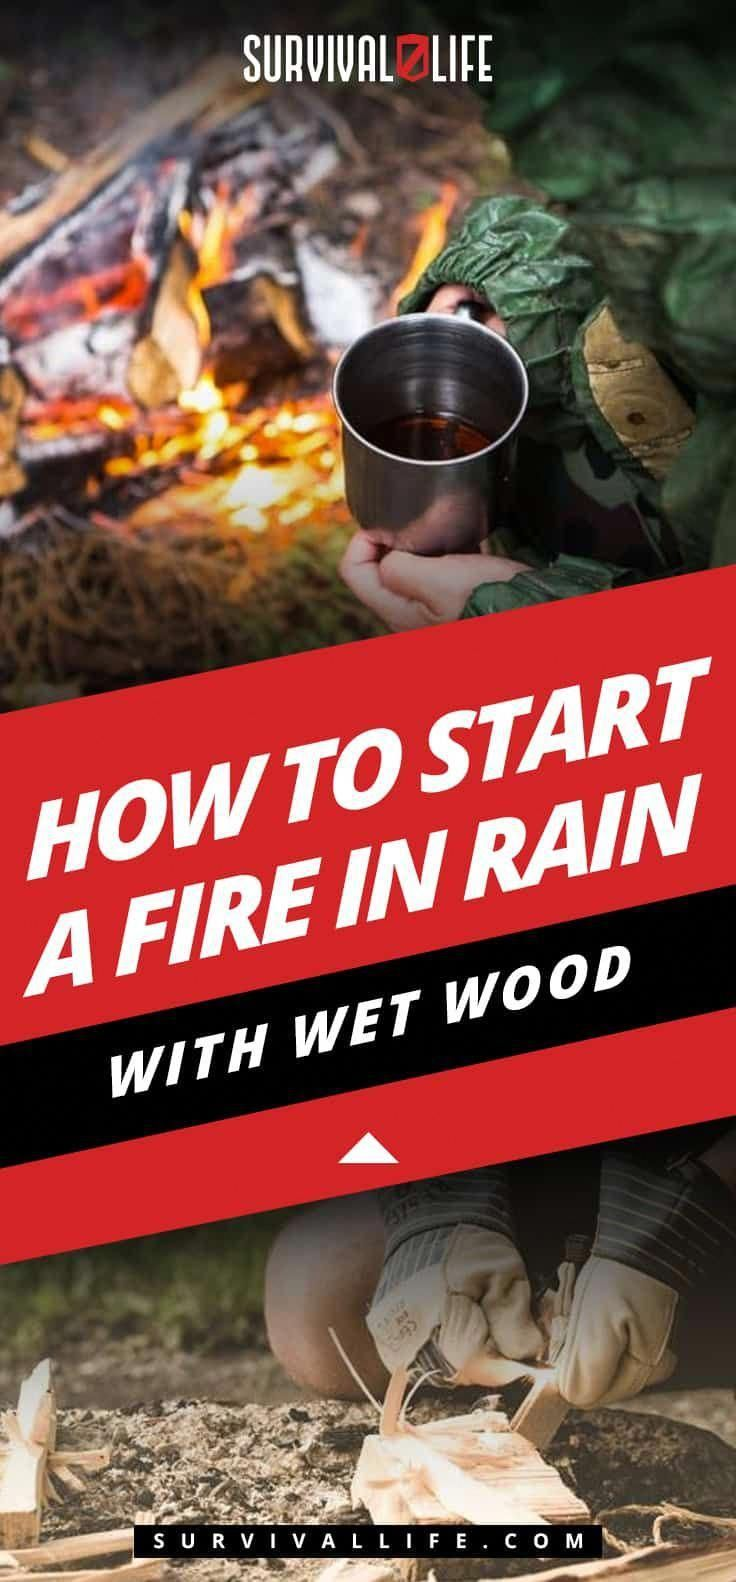 How To Start A Fire In Rain With Wet Wood Posted by